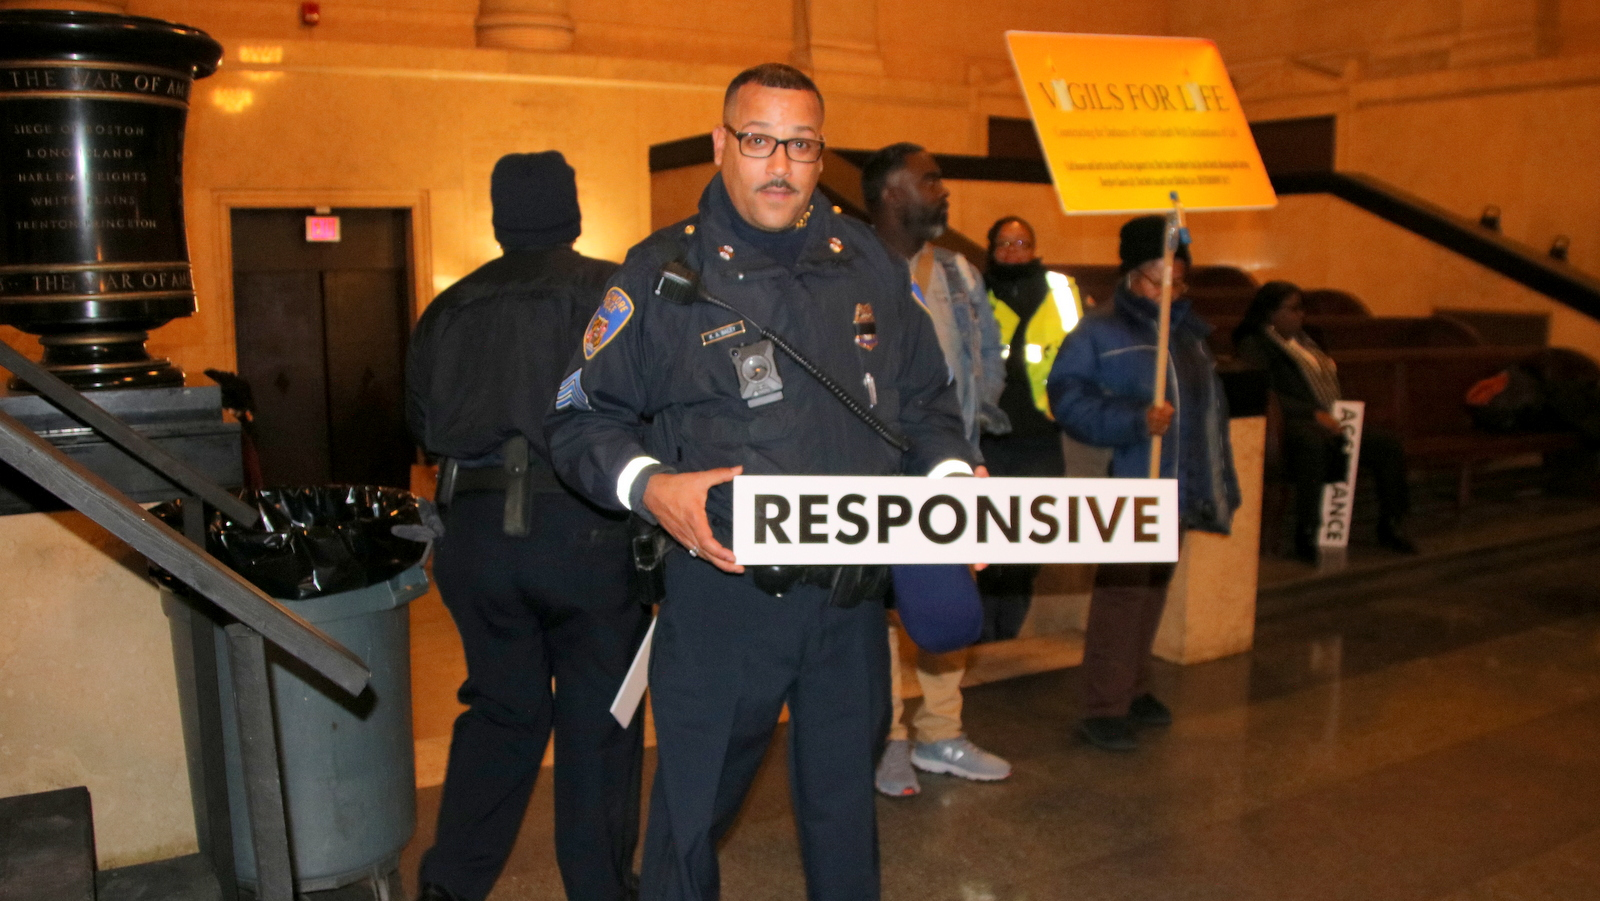 Police officers were among the many city employees who held the official signs. (Fern Shen)